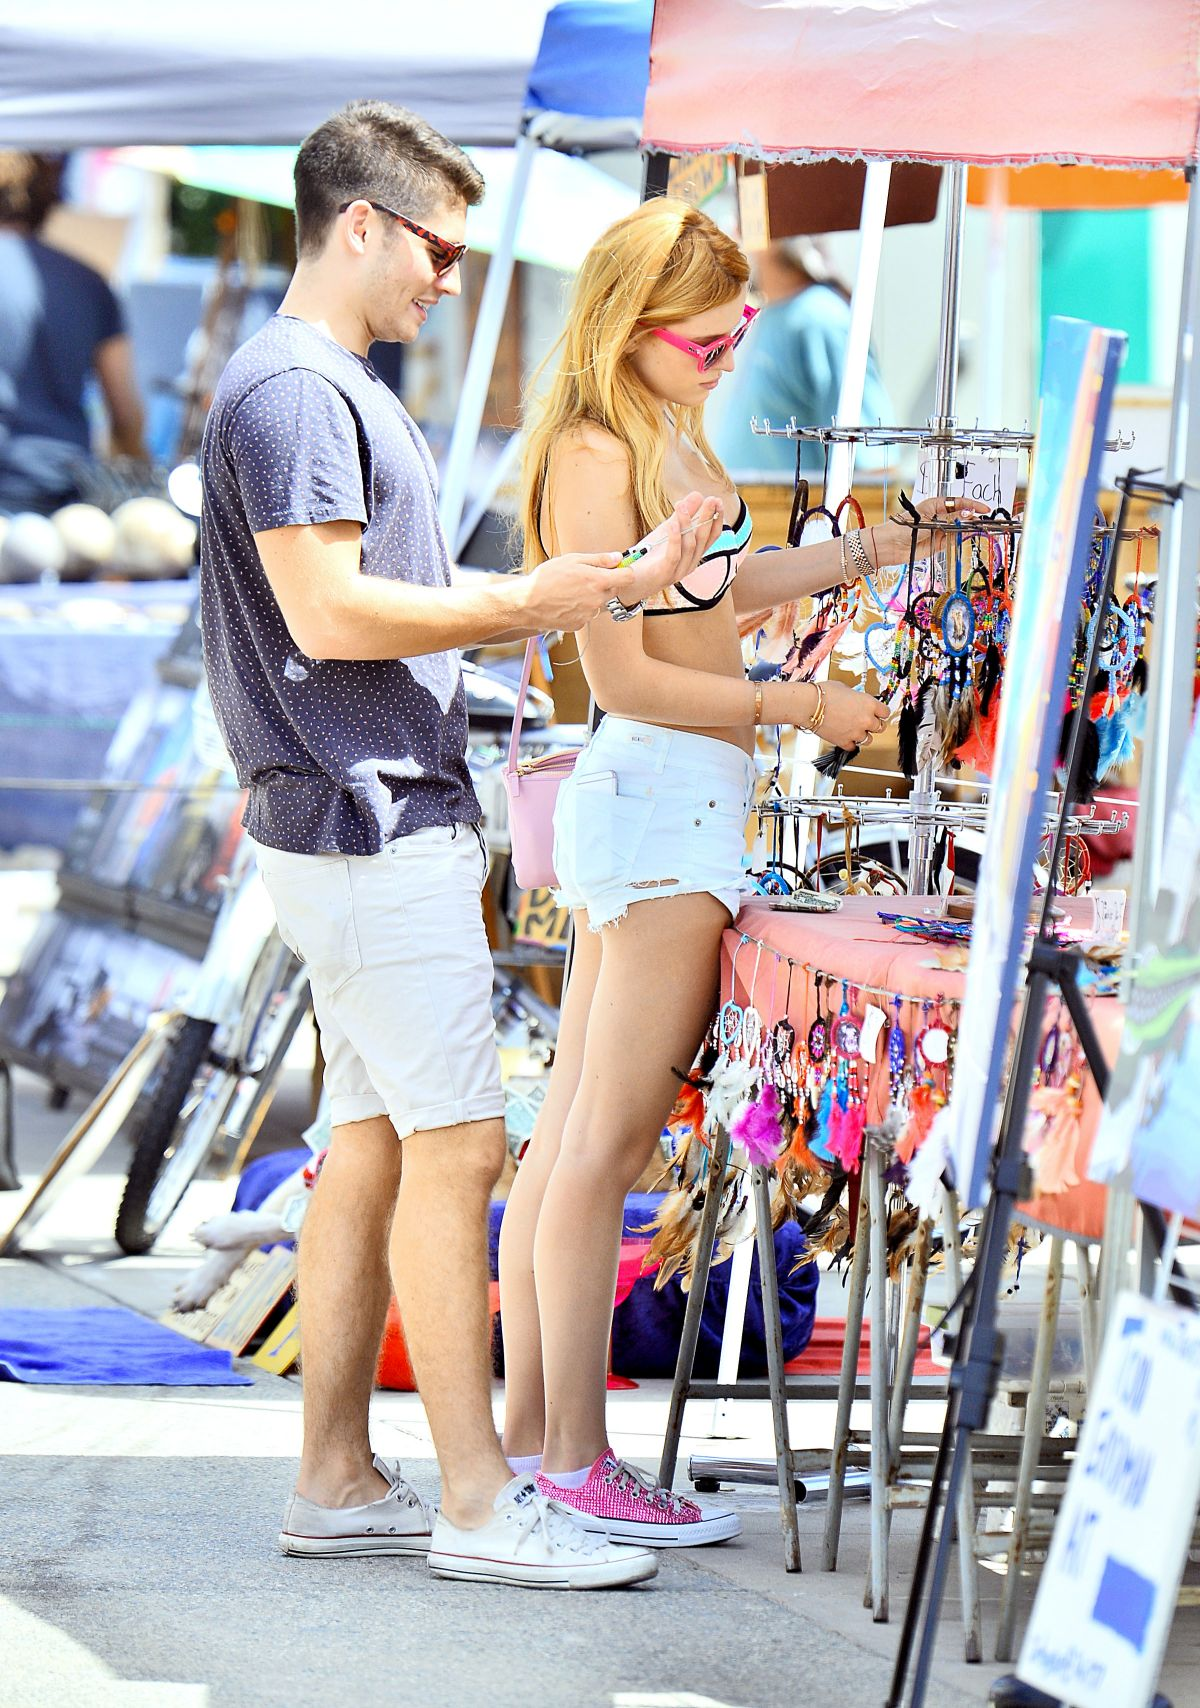 bella thorne in shorts and bikini top out in venice beach 07 26 2015 hawtcelebs hawtcelebs. Black Bedroom Furniture Sets. Home Design Ideas